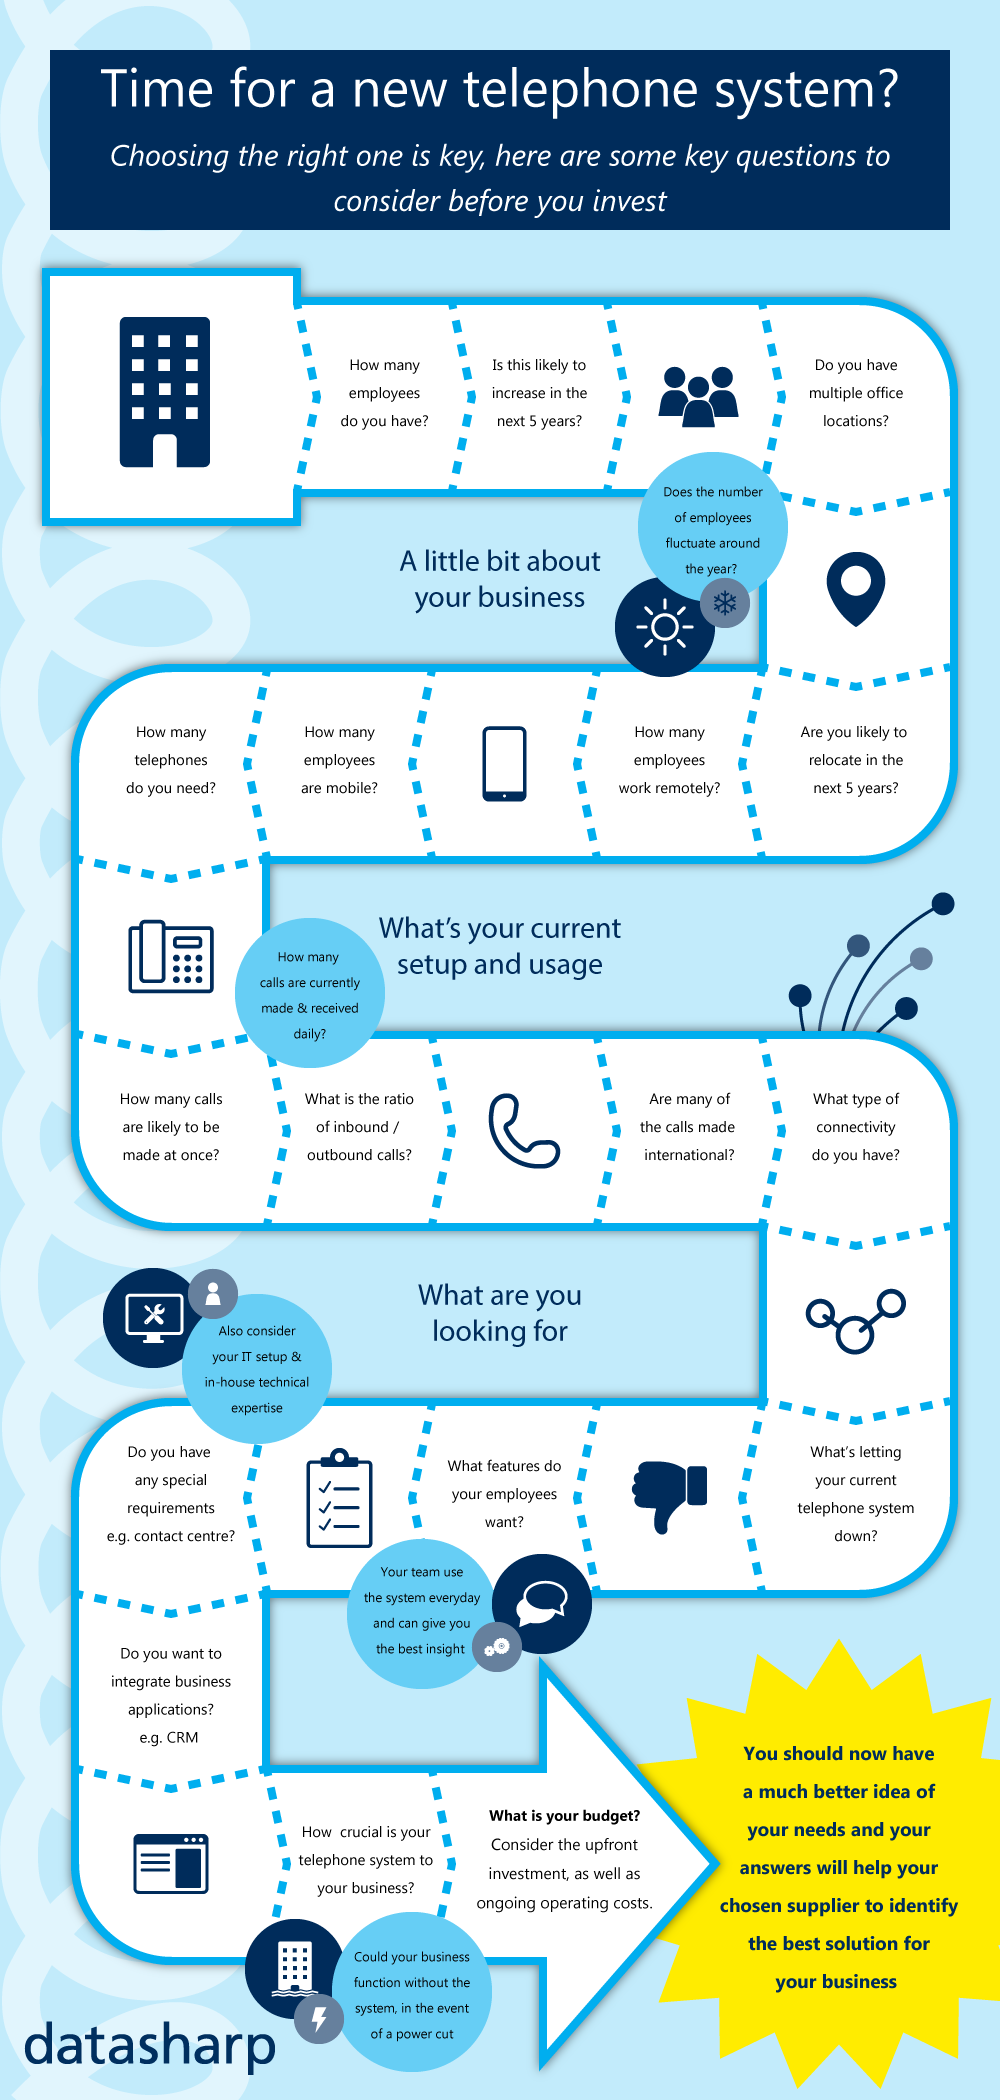 time for a new telephone system infographic